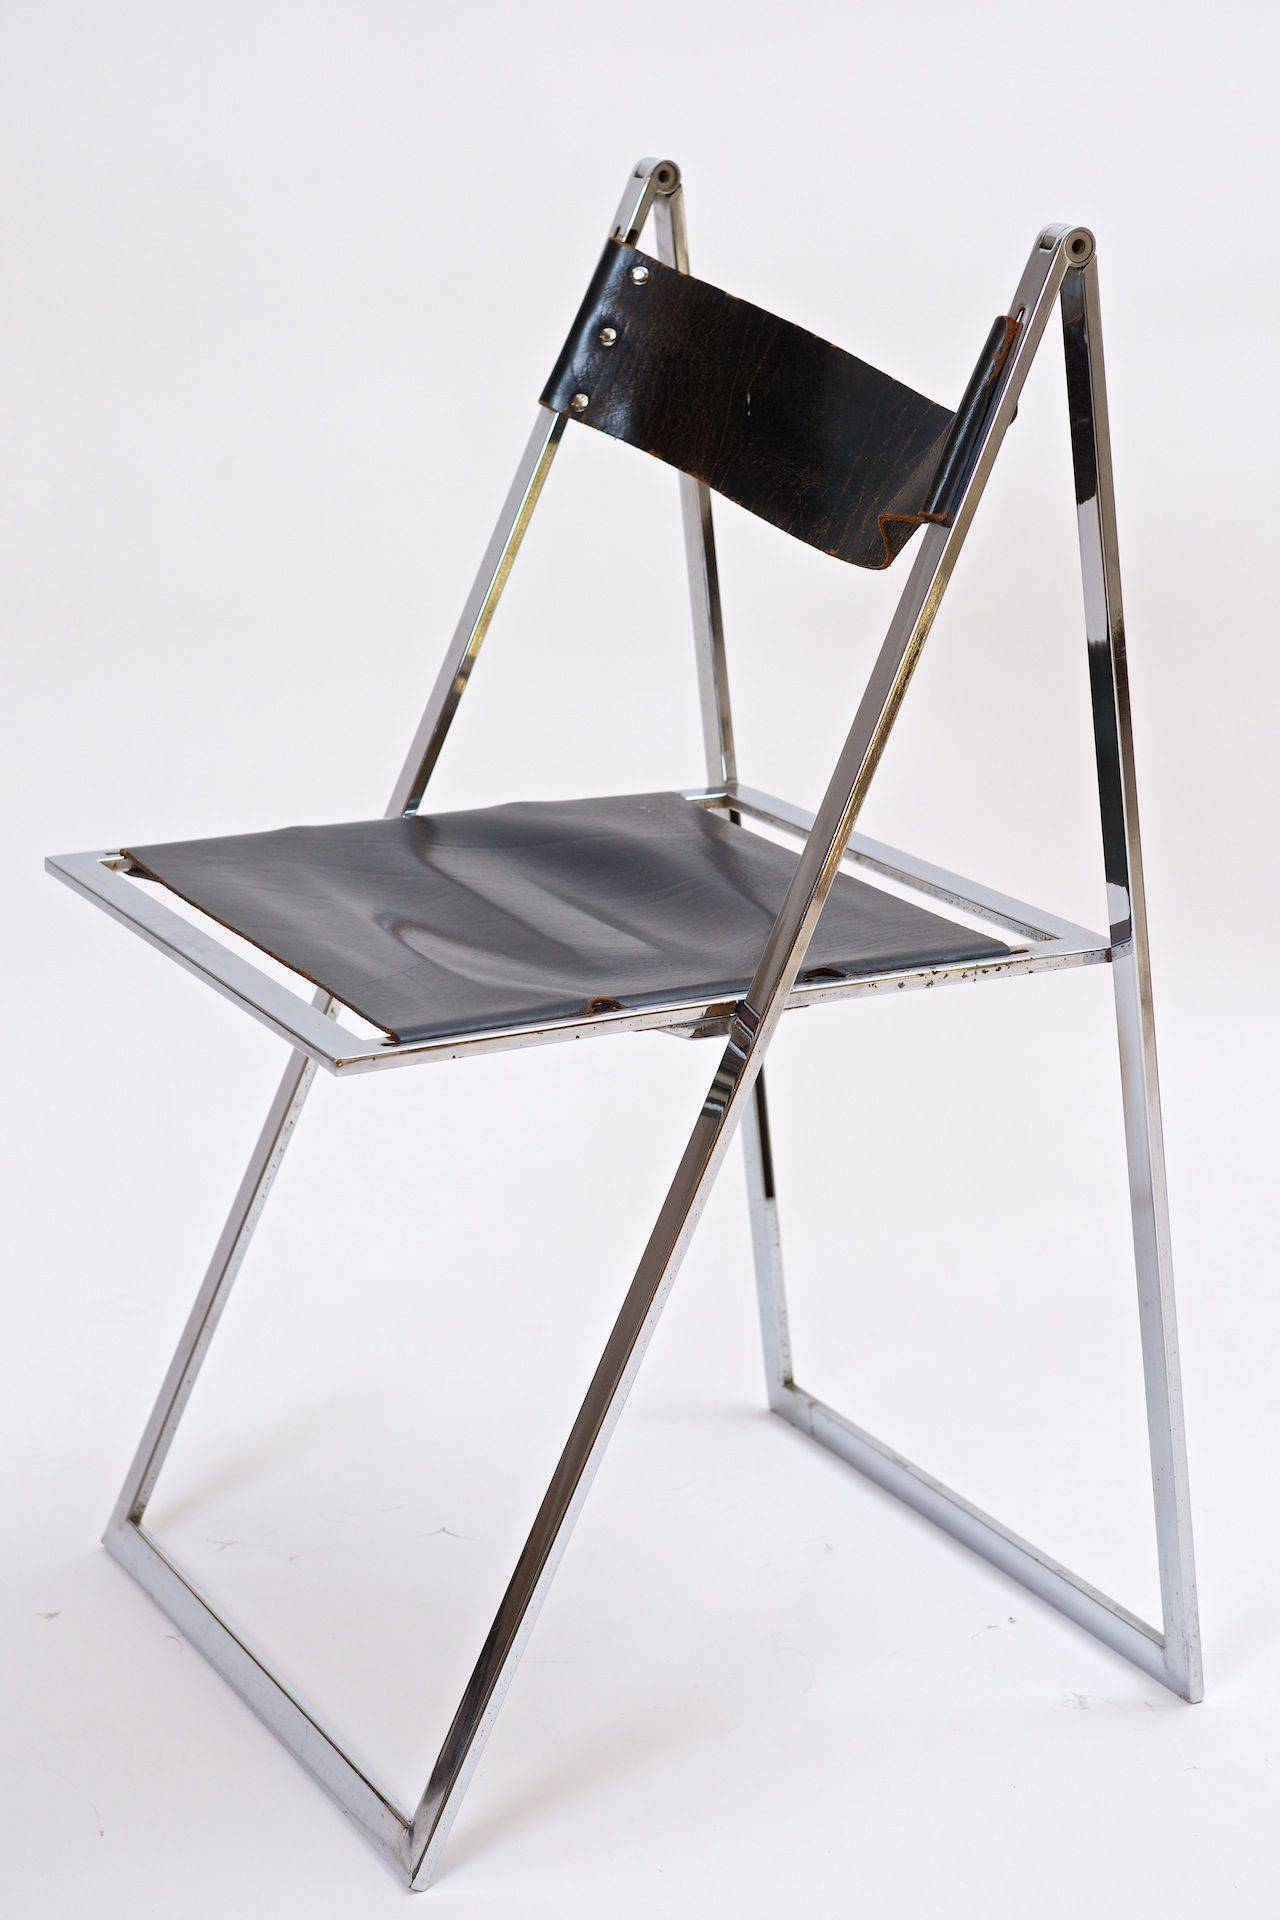 Charmant Italian Chrome And Leather Folding Chairs For Sale